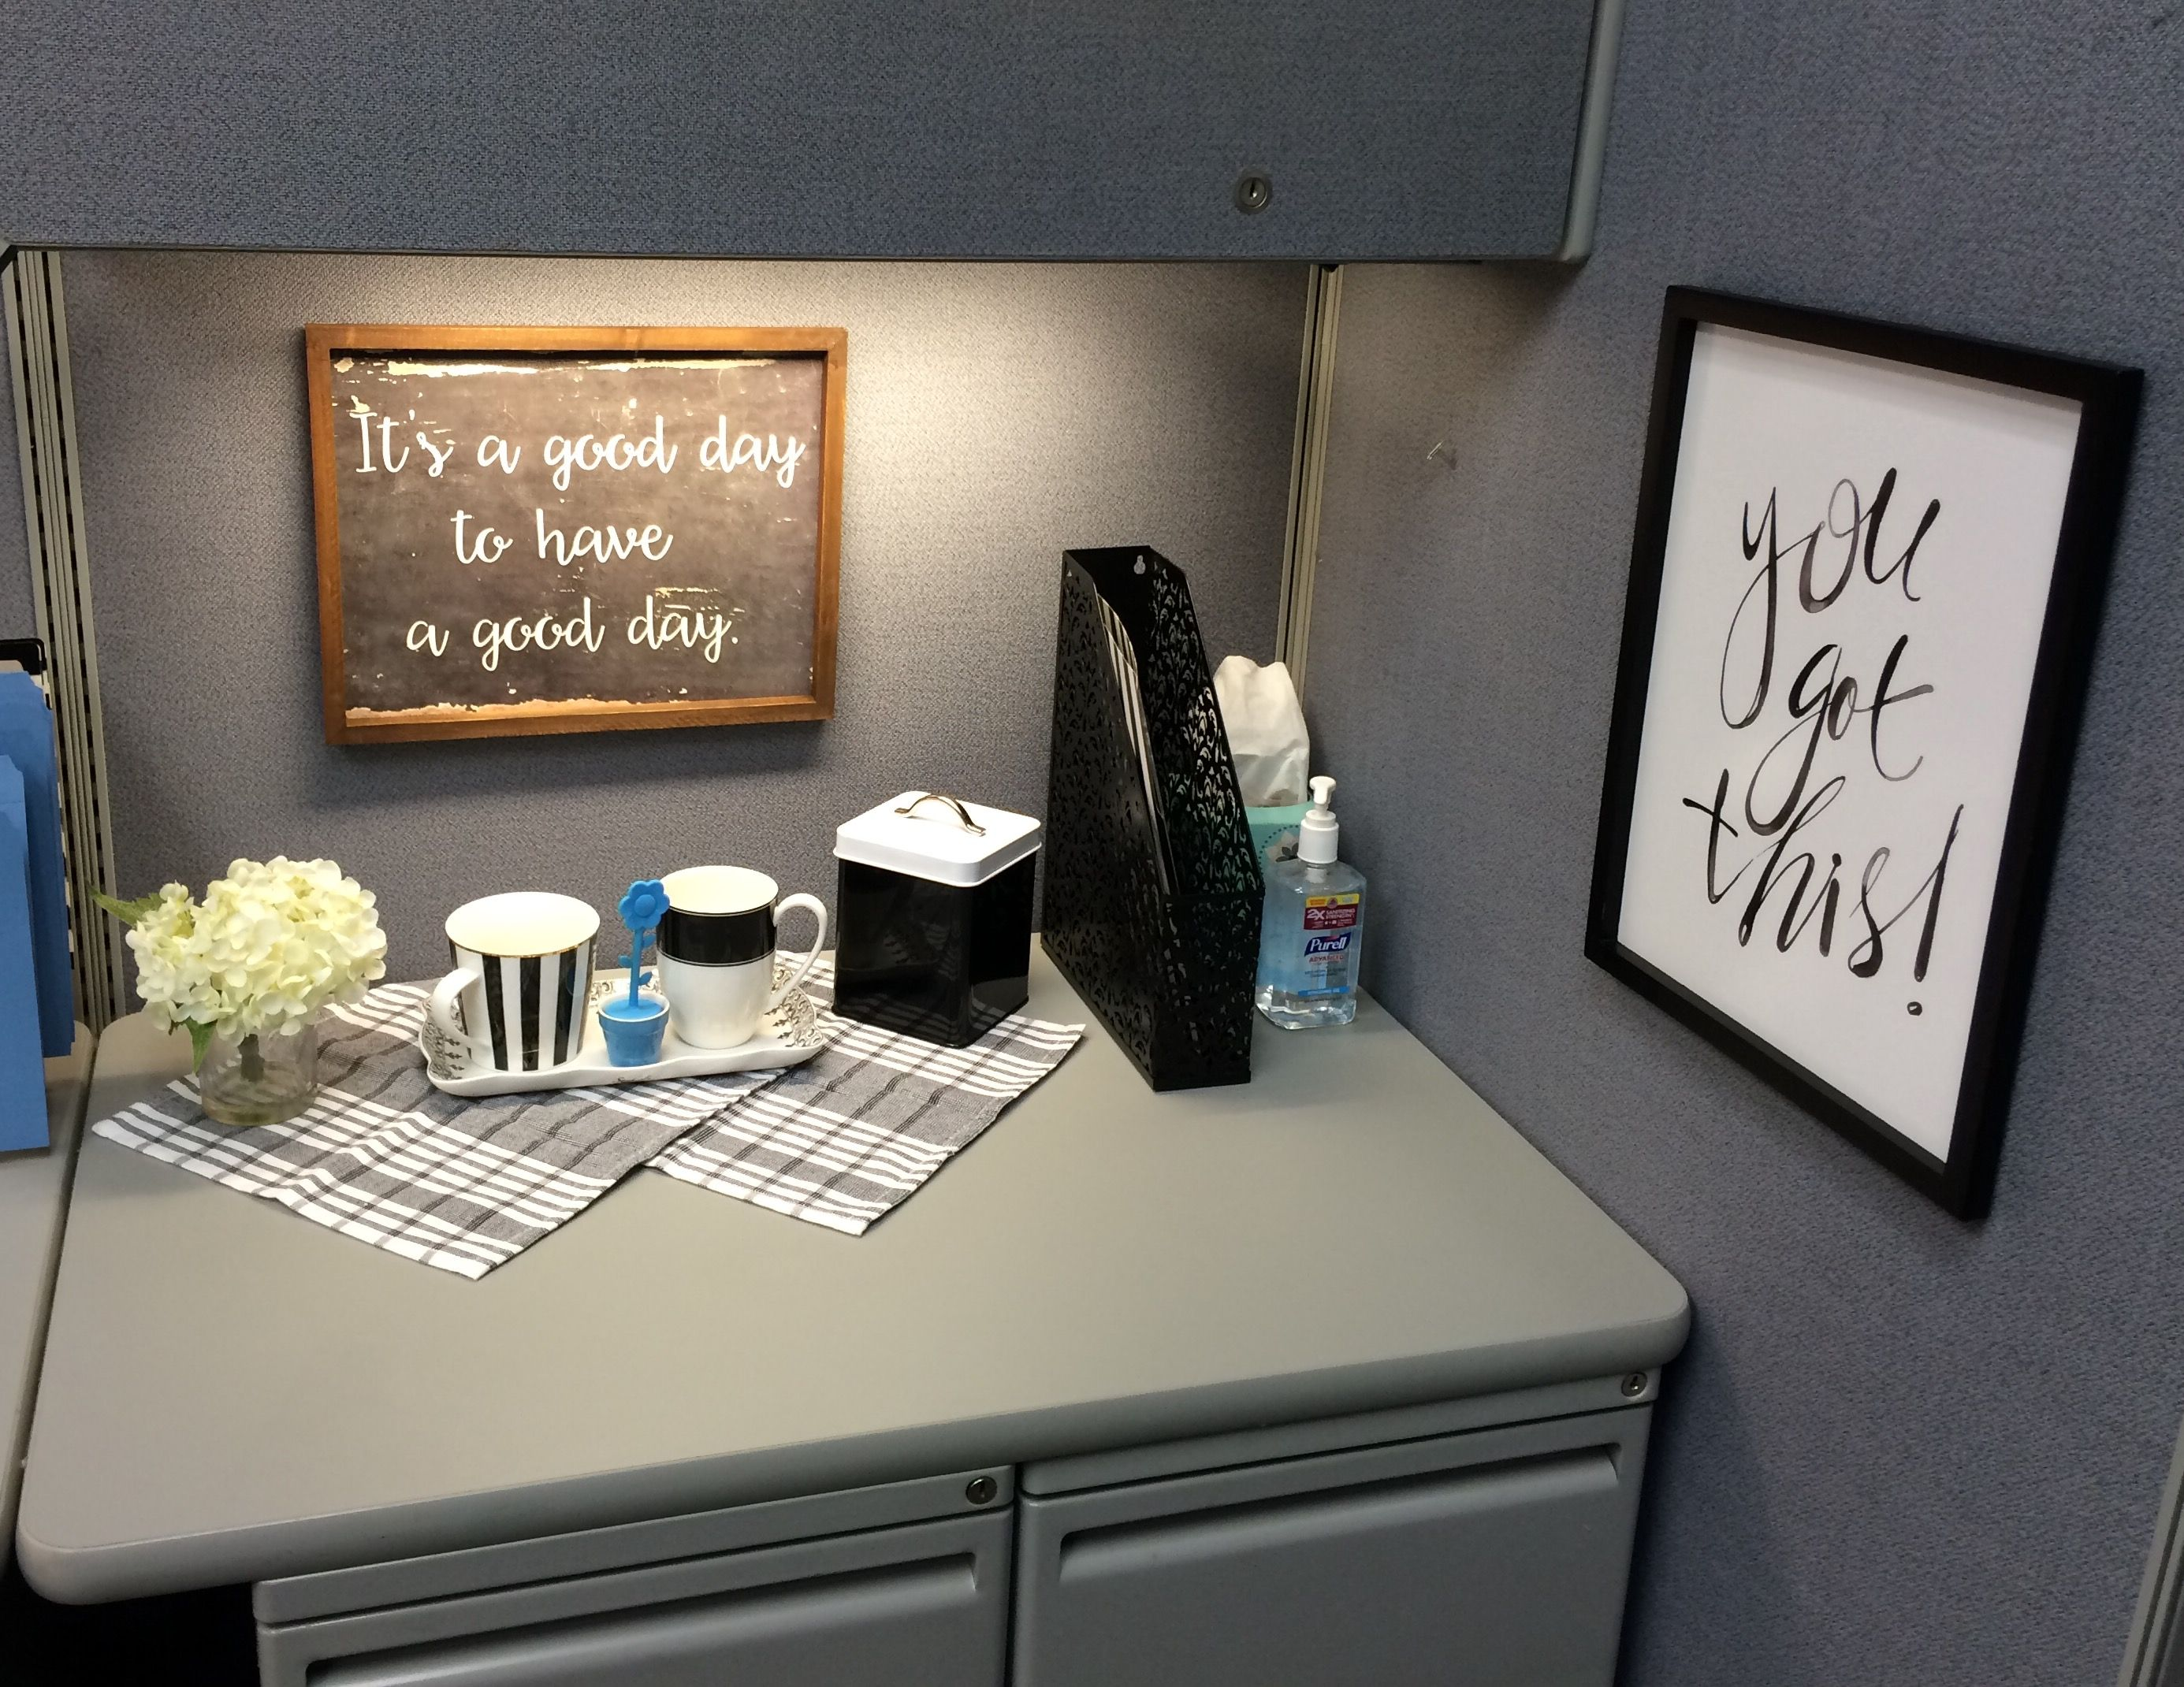 Chose To Go With Black And White With Accents Of Blue And Metalics Cubicle Decor Office Office Cube Work Cubicle Decor